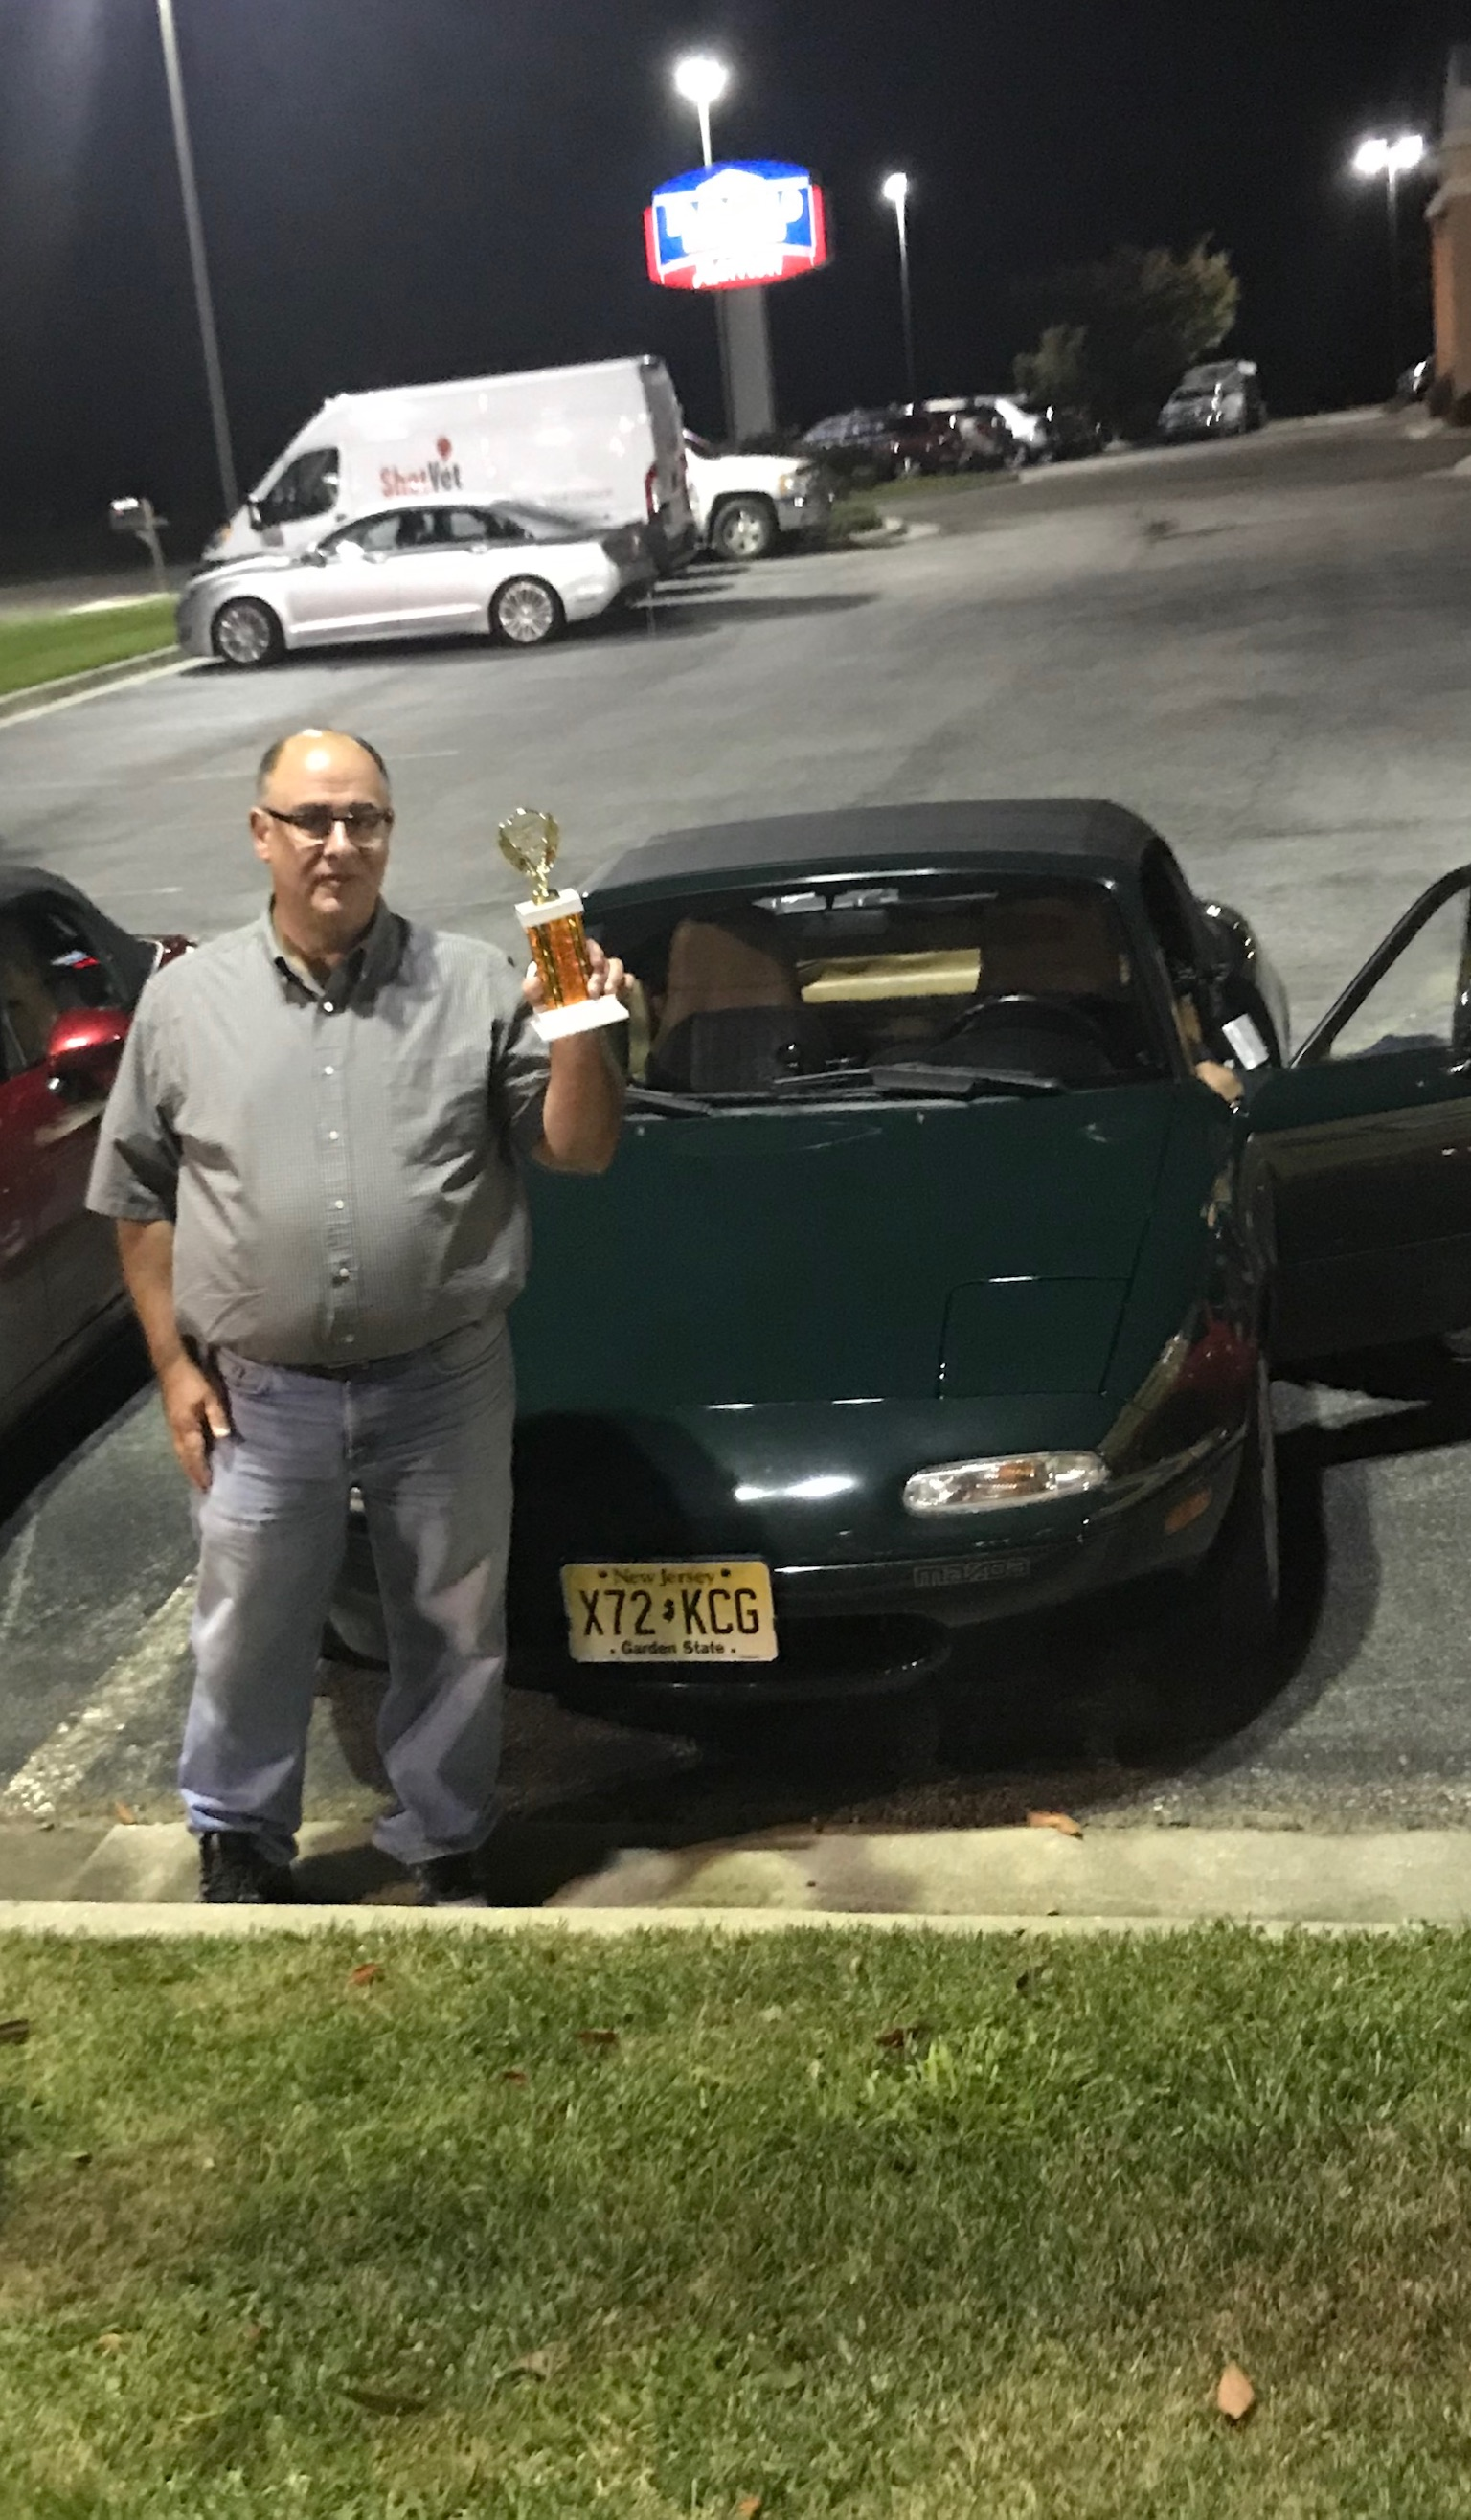 Doug Weierich with his trophy and car that won the NA division.